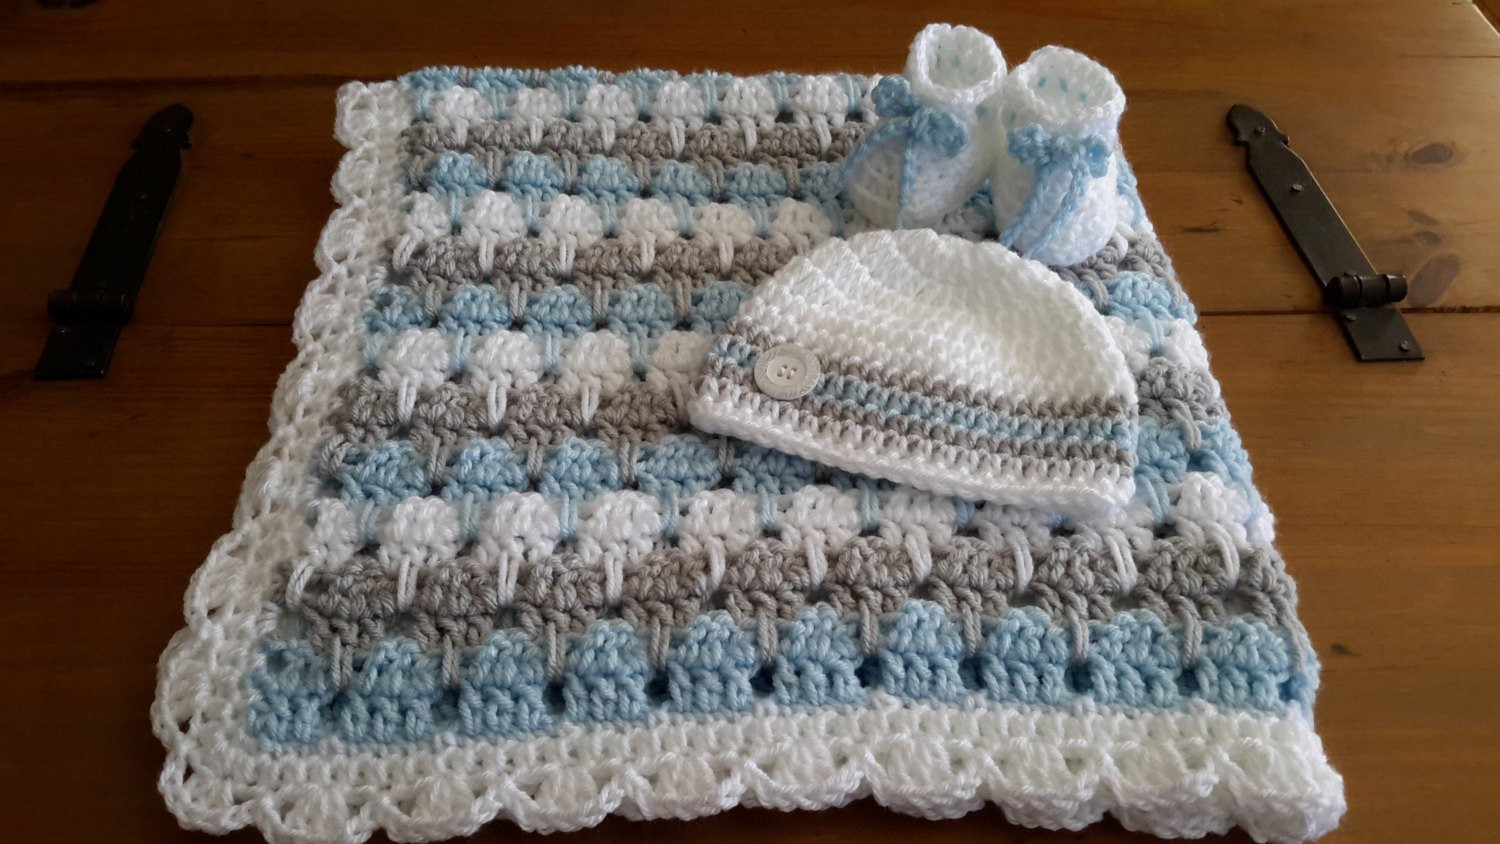 Baby Boy Crochet Blanket Patterns Lovely Baby Boy Blanket Crochet Stripe Crochet Blanket Afghan Of Baby Boy Crochet Blanket Patterns Luxury Baby Blanket with Cabled Border Crochet Pattern